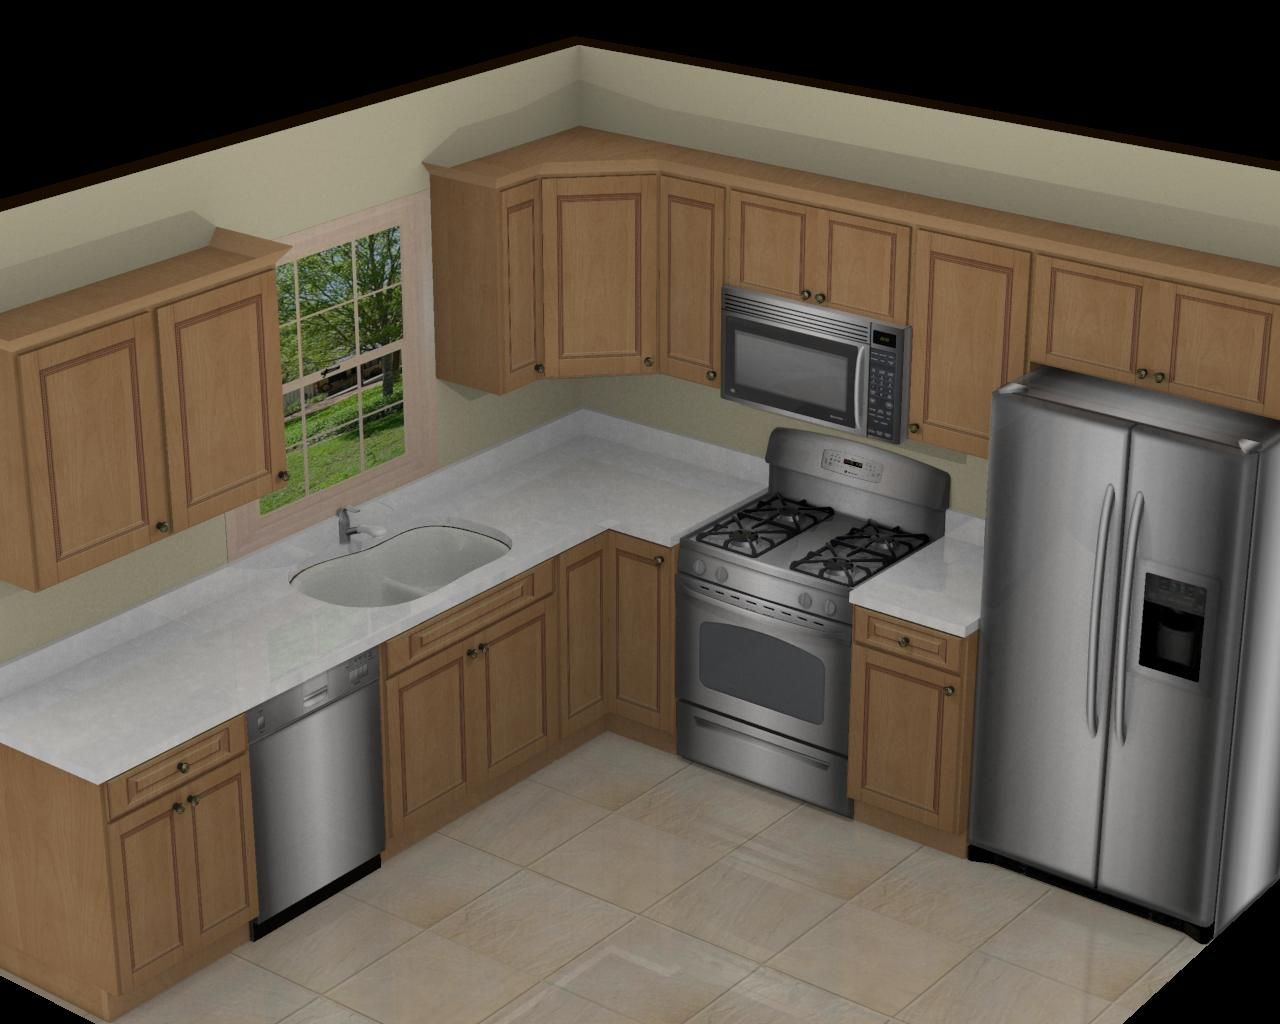 10x10 Kitchen Remodel Small Kitchen Layouts Small Kitchen Design Layout Kitchen Remodel Small